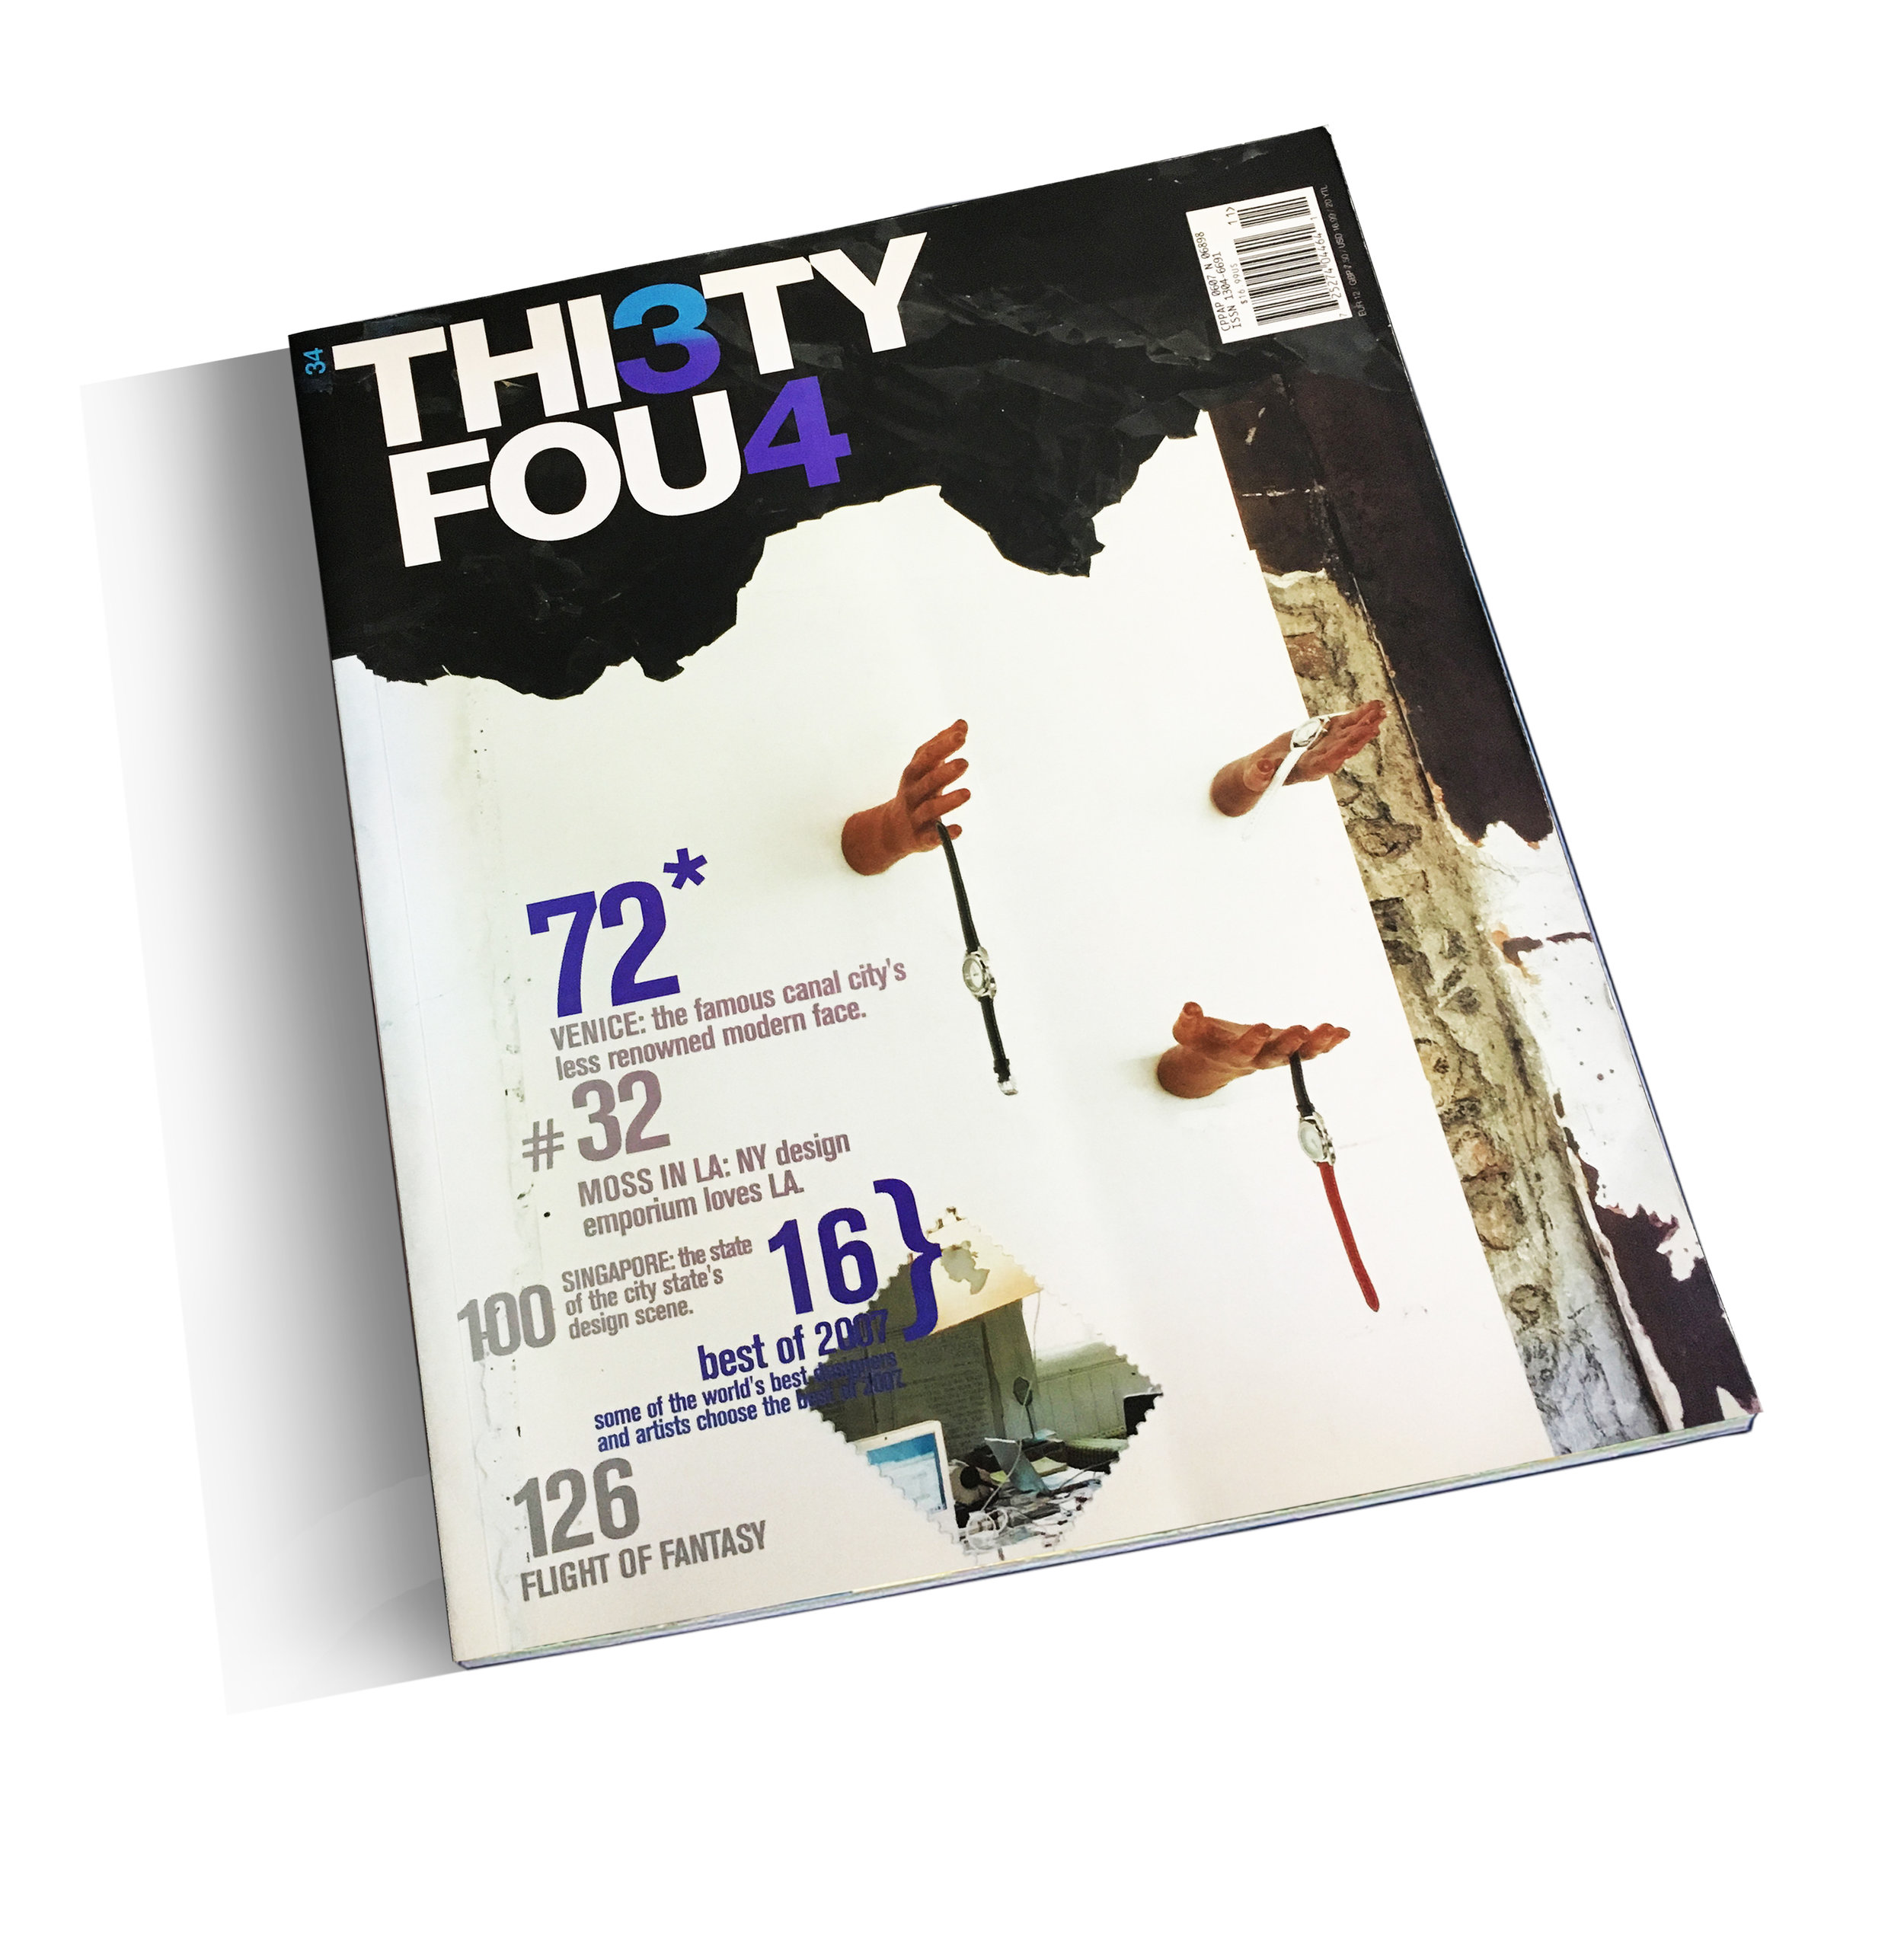 """""""Big, Vast, Powerful, and Contemporary: Picturing Education in LA""""   Thi3ty Fou4 Magazine 11 (October 2007): 160-165    download pdf"""